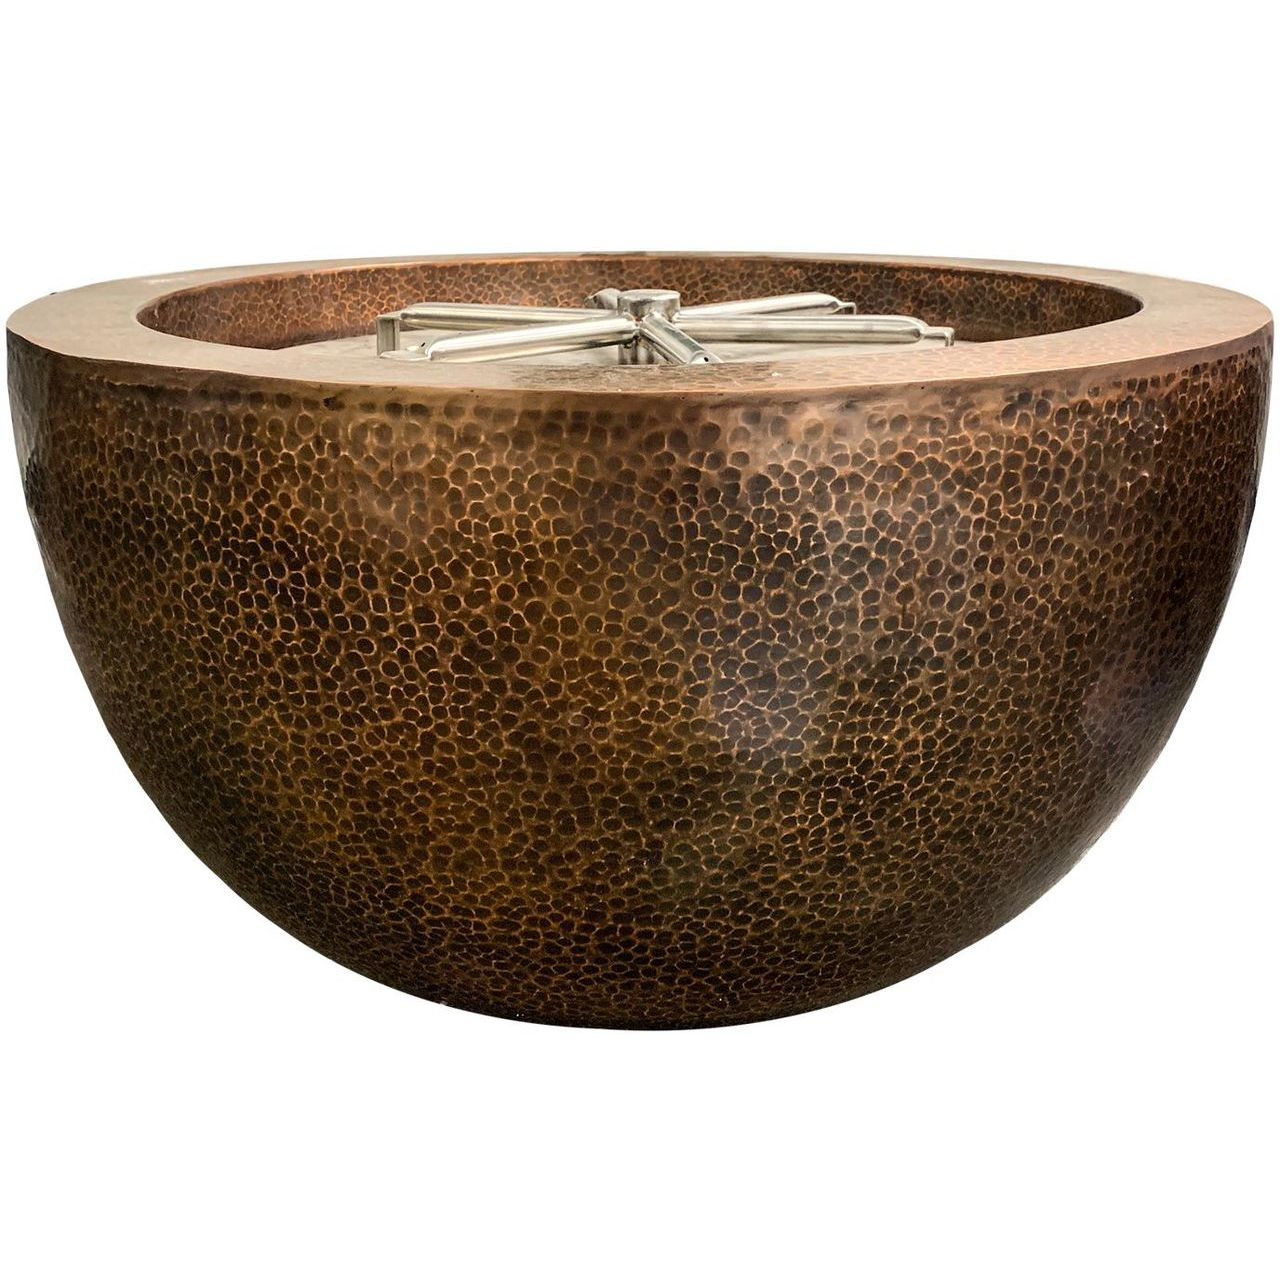 Prism Hardscapes Moderno 3 Fire Bowl in Copper - NG